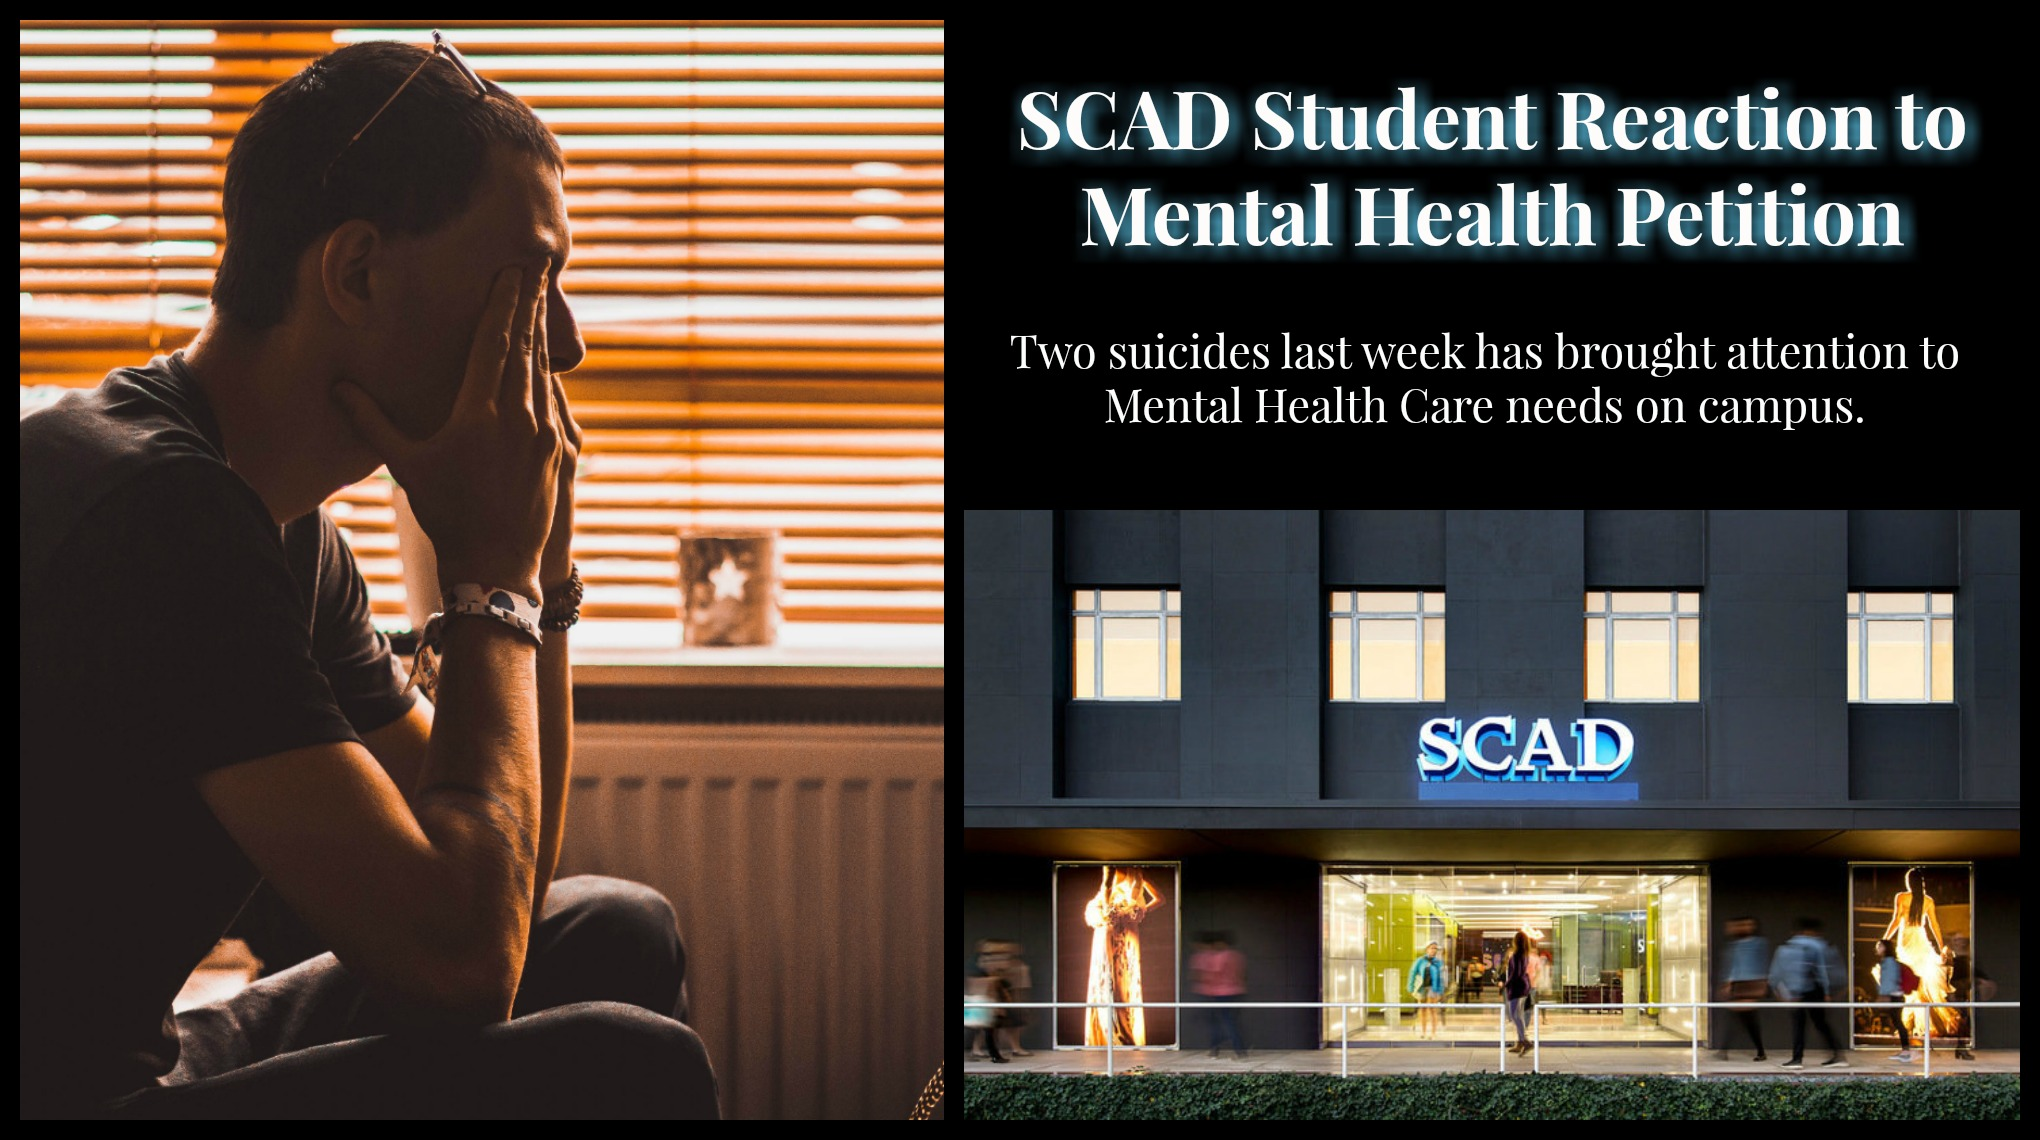 SCAD Student Reaction to the Mental Health Petition